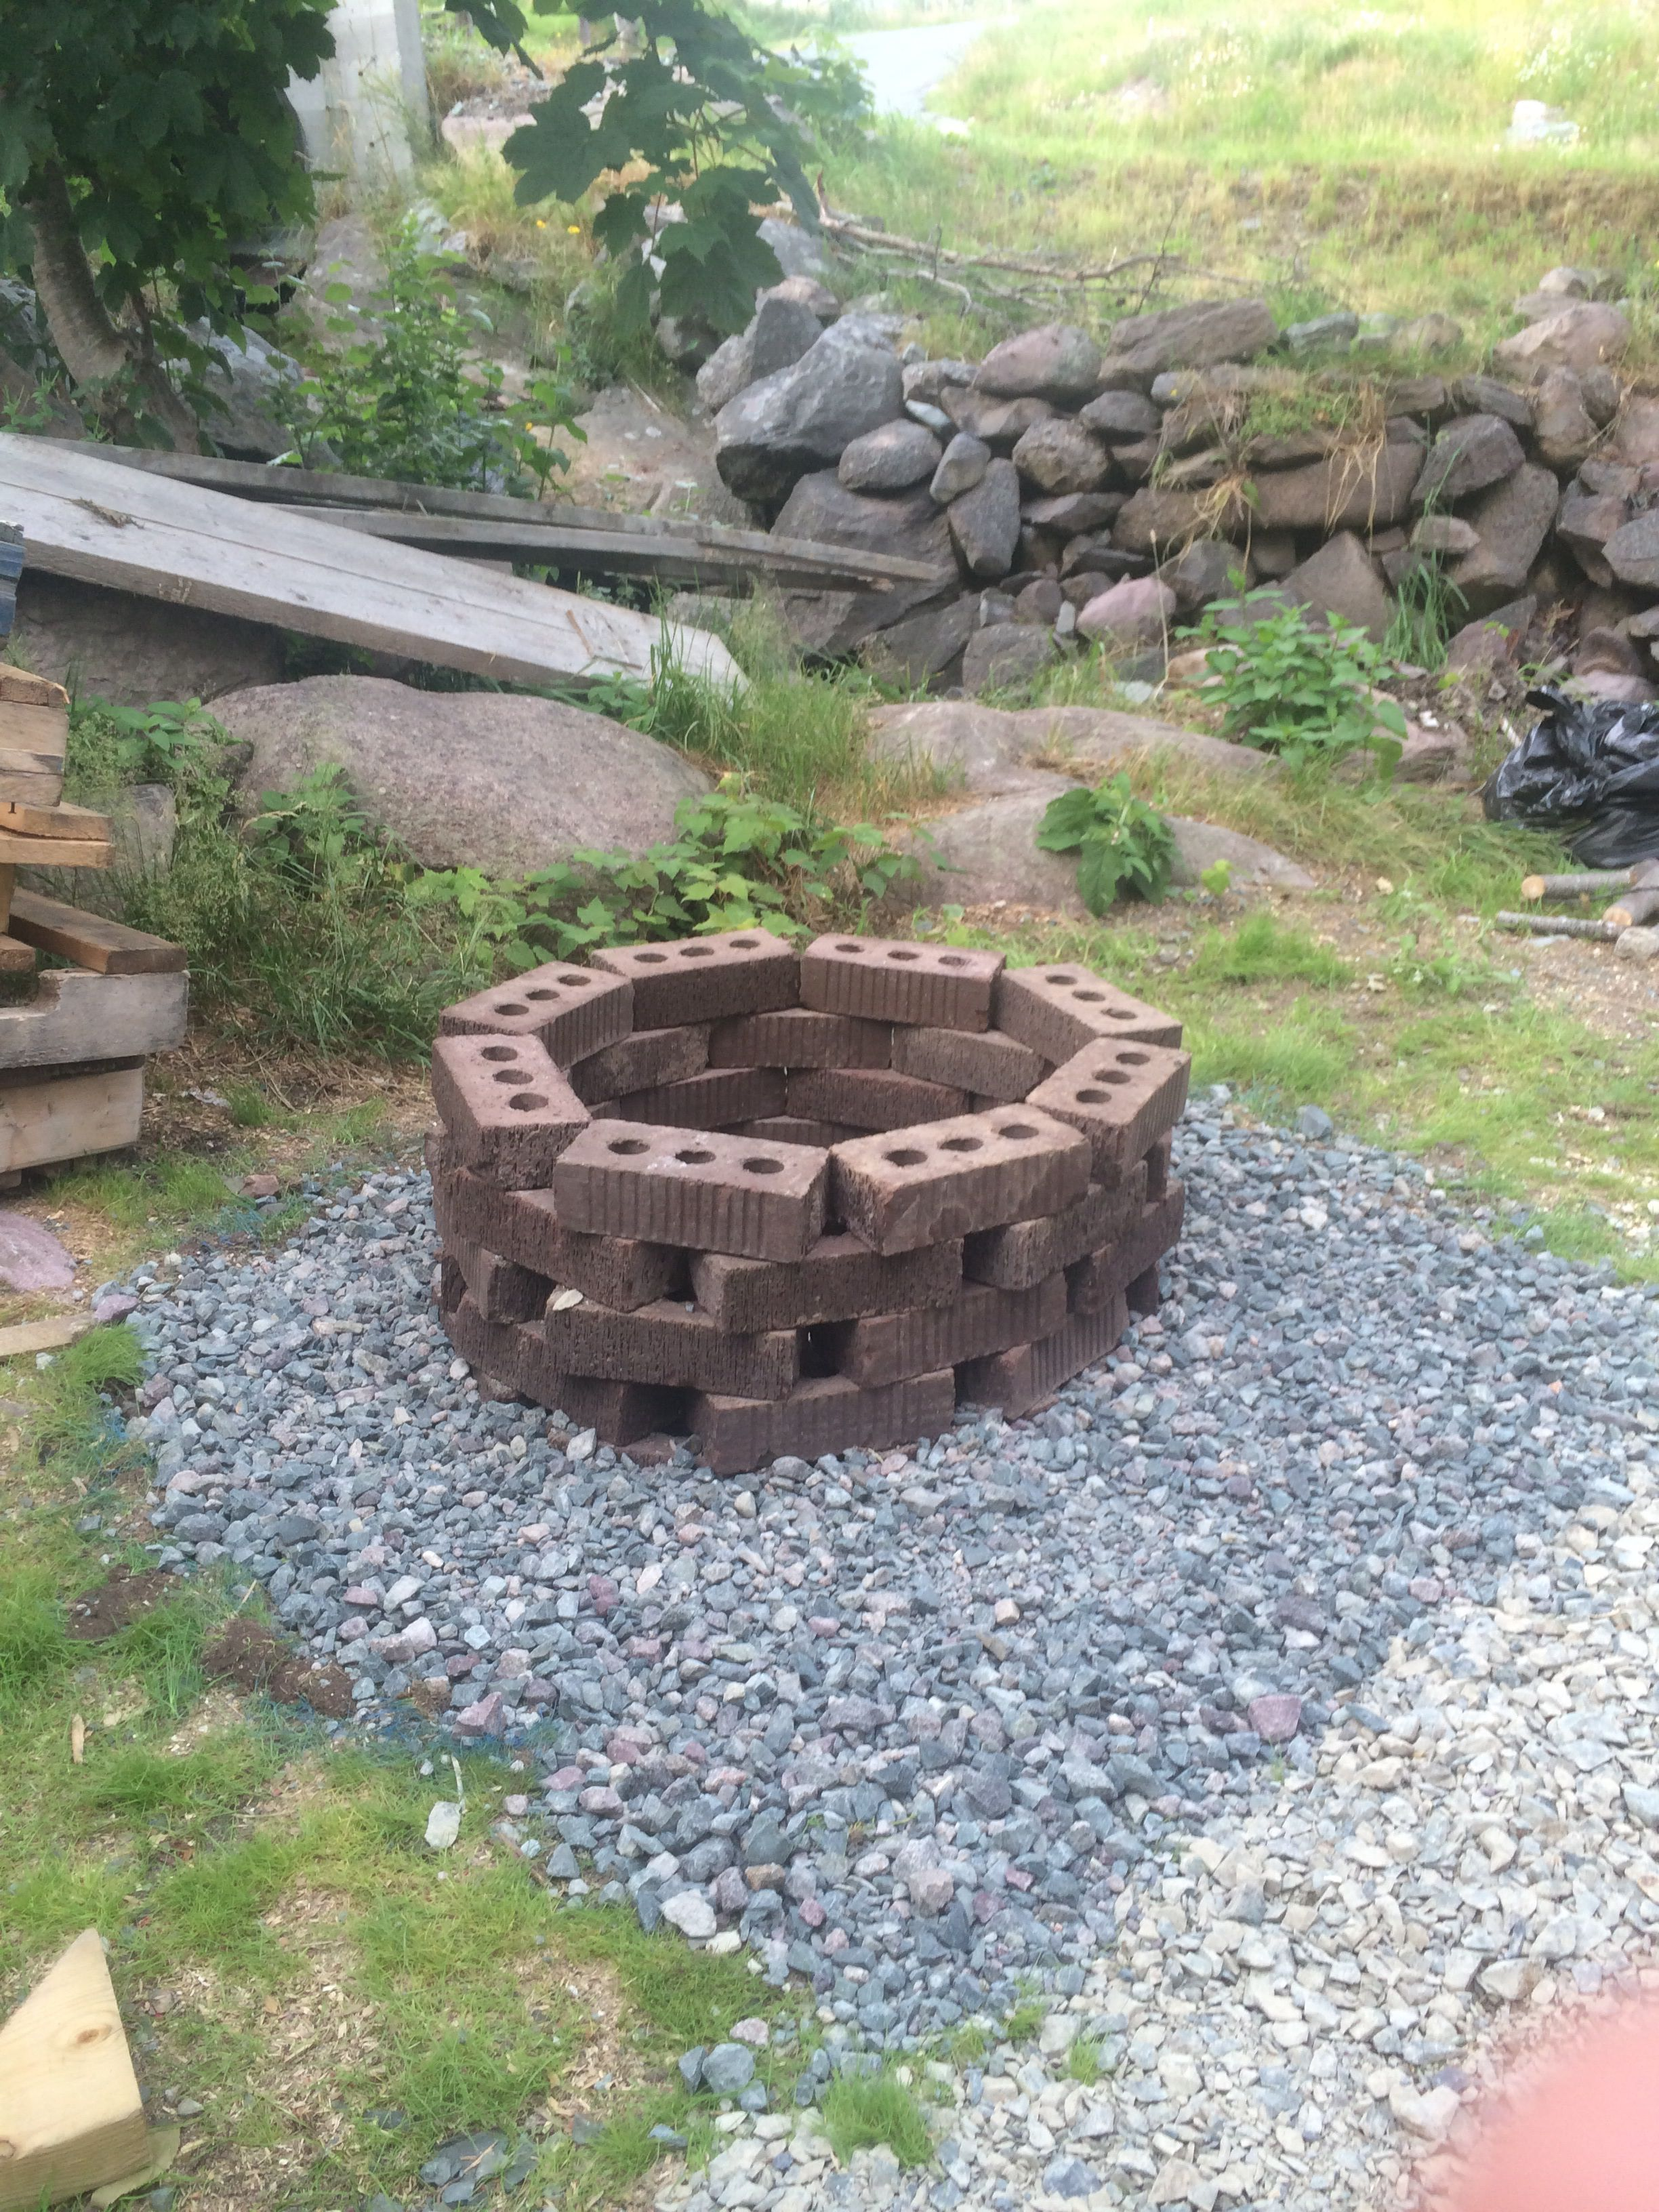 13 Inspiring Diy Fire Pit Ideas To Improve Your Backyard Backyard Fire Pit Designs Ideas Diy Fire Pit Fire Pit Backyard Y Chiminea Fire Pit